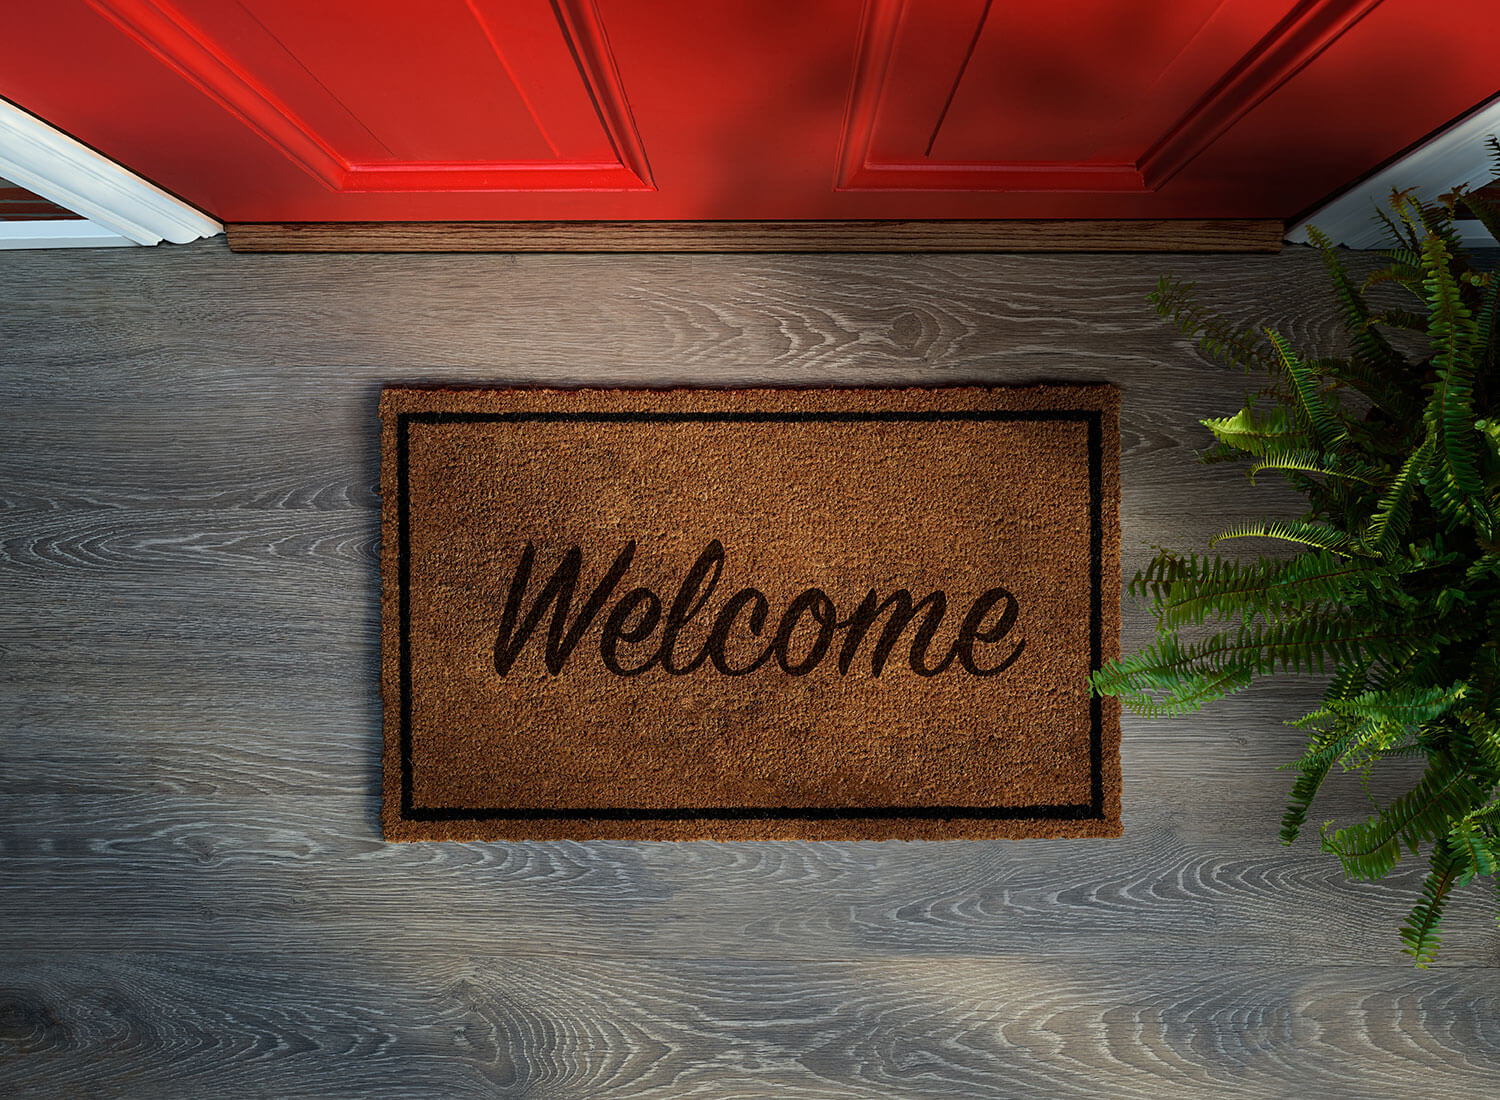 Welcome mat in front of red door. Buying a house can be complicated, let The Homebuyers help you find your dream home | MN EBA